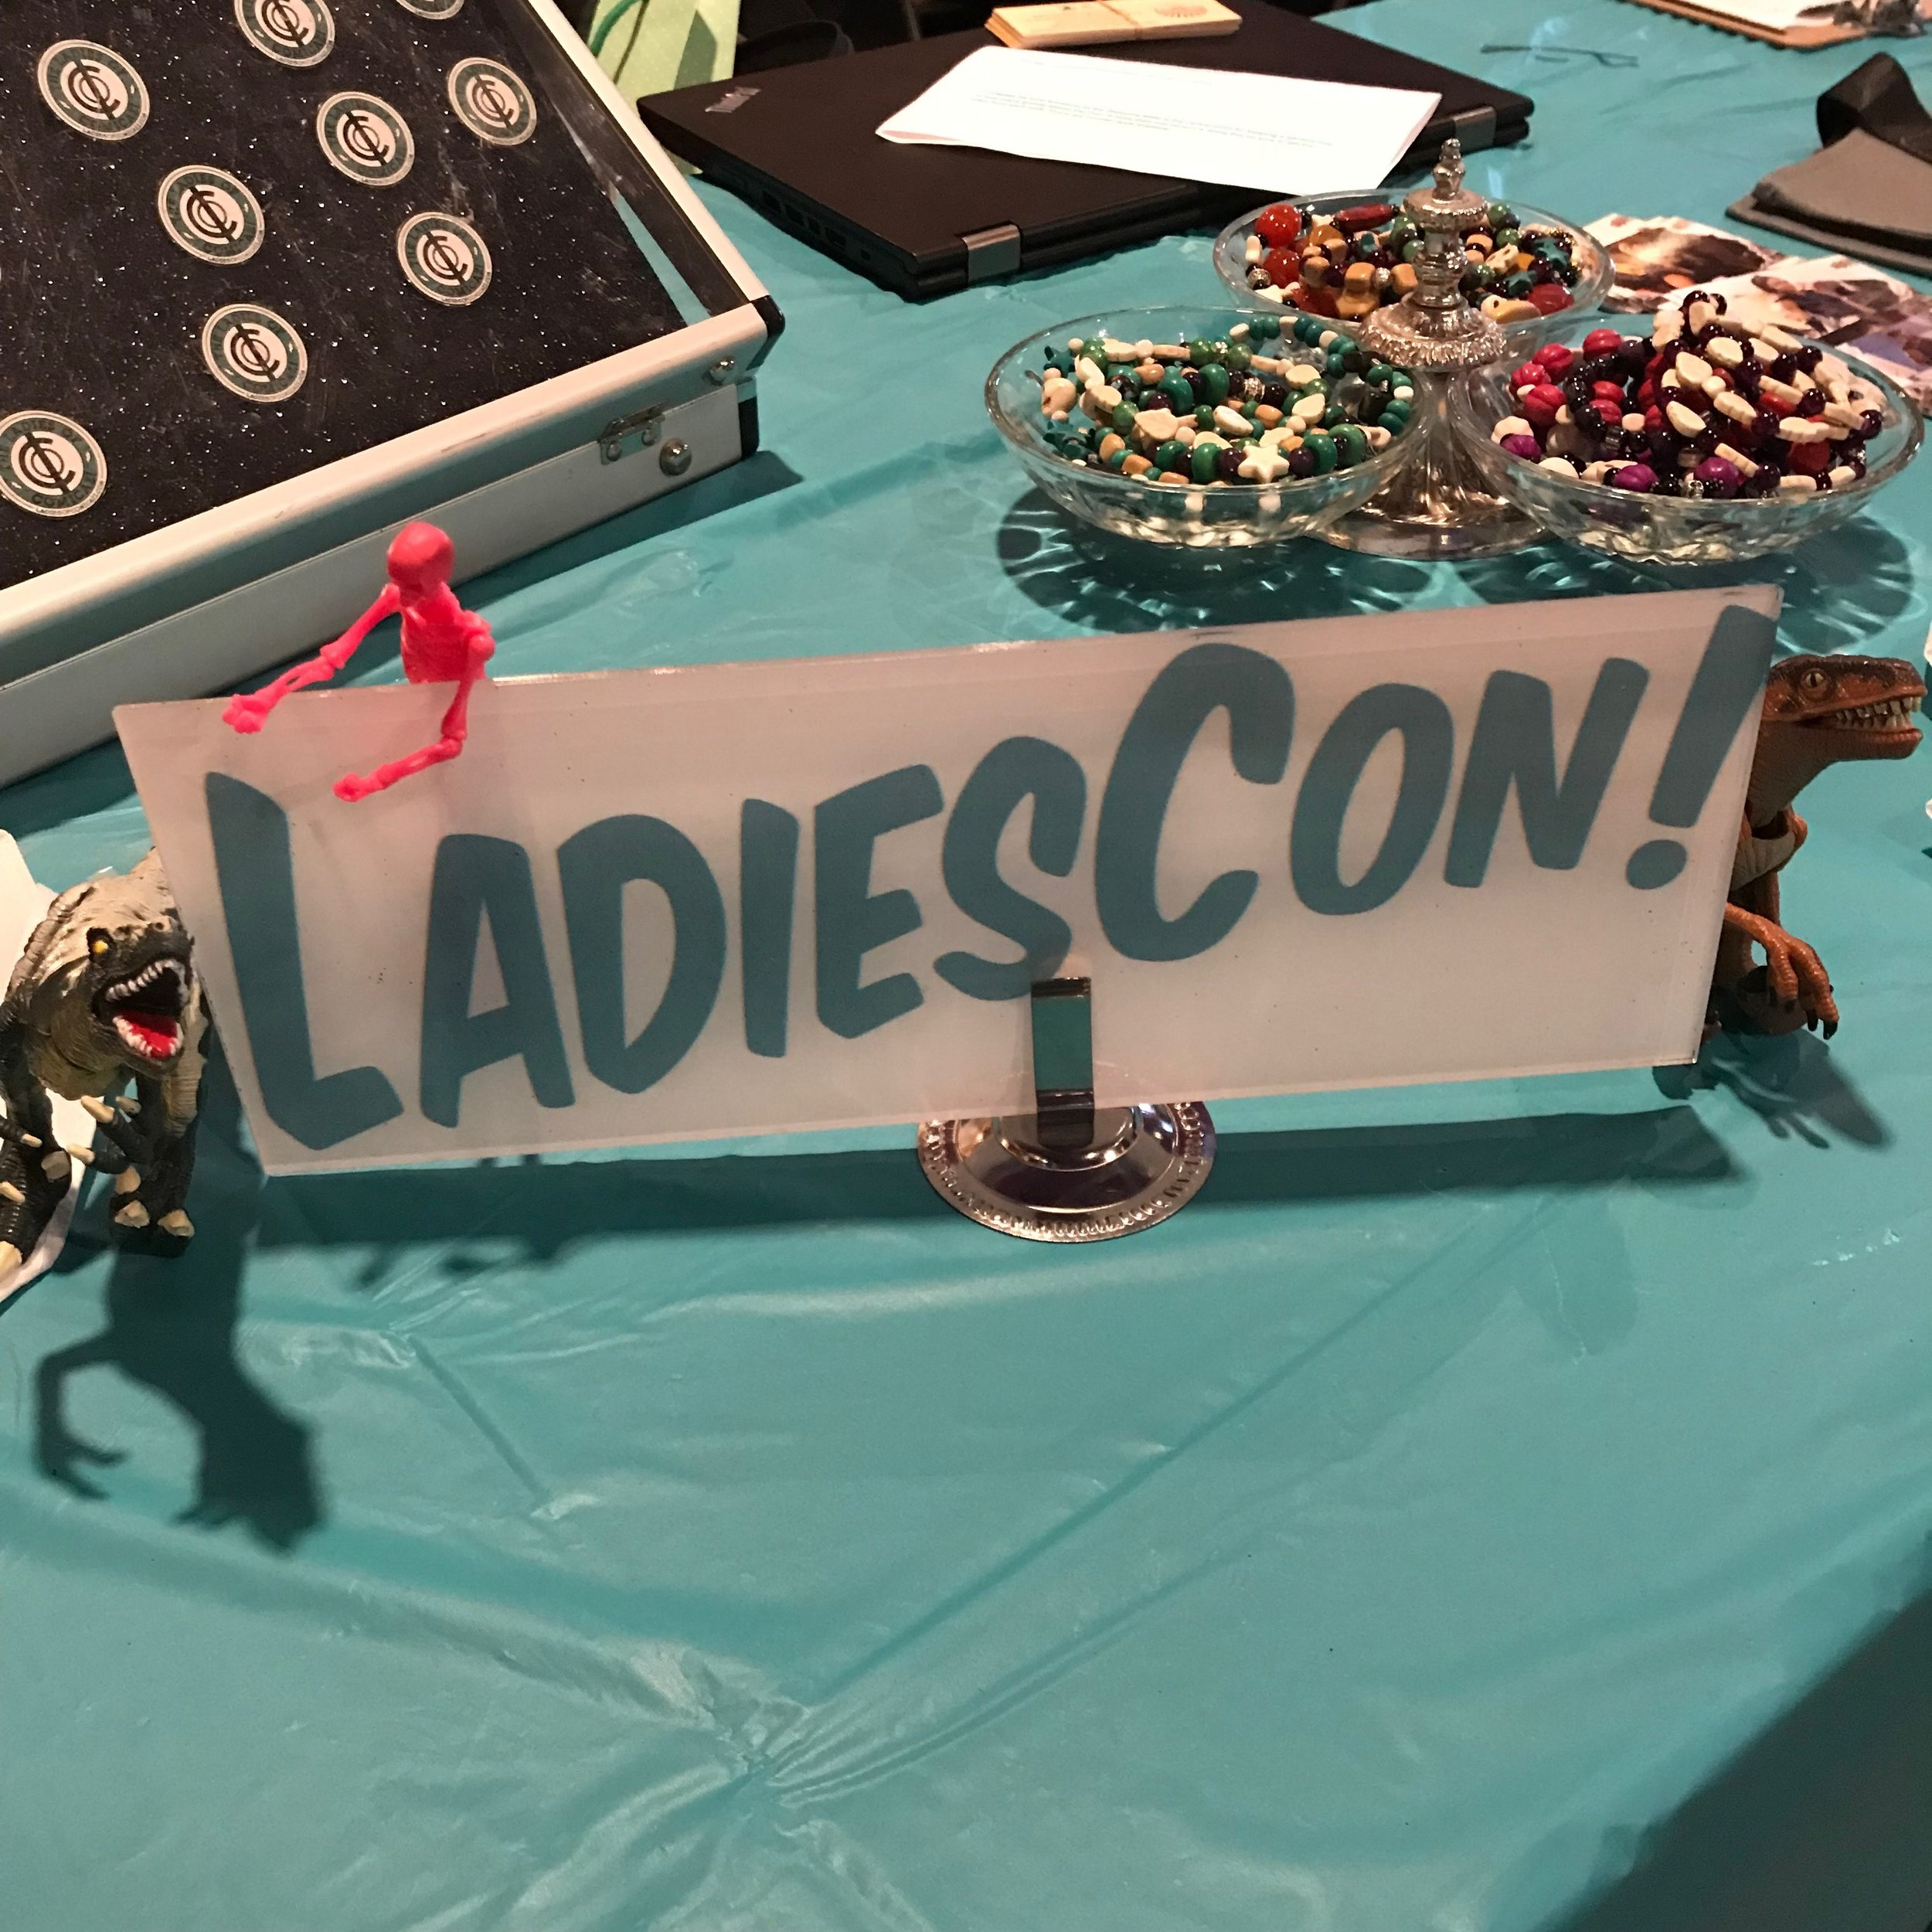 What is LadiesCon? - LadiesCon is a FREE ADMISSION one day celebration of comics, science fiction, fantasy, cosplay, and many other realms of pop culture with a special focus on women, non-binary people, and the LGBTQ+ community. We are open to everyone.Learn More